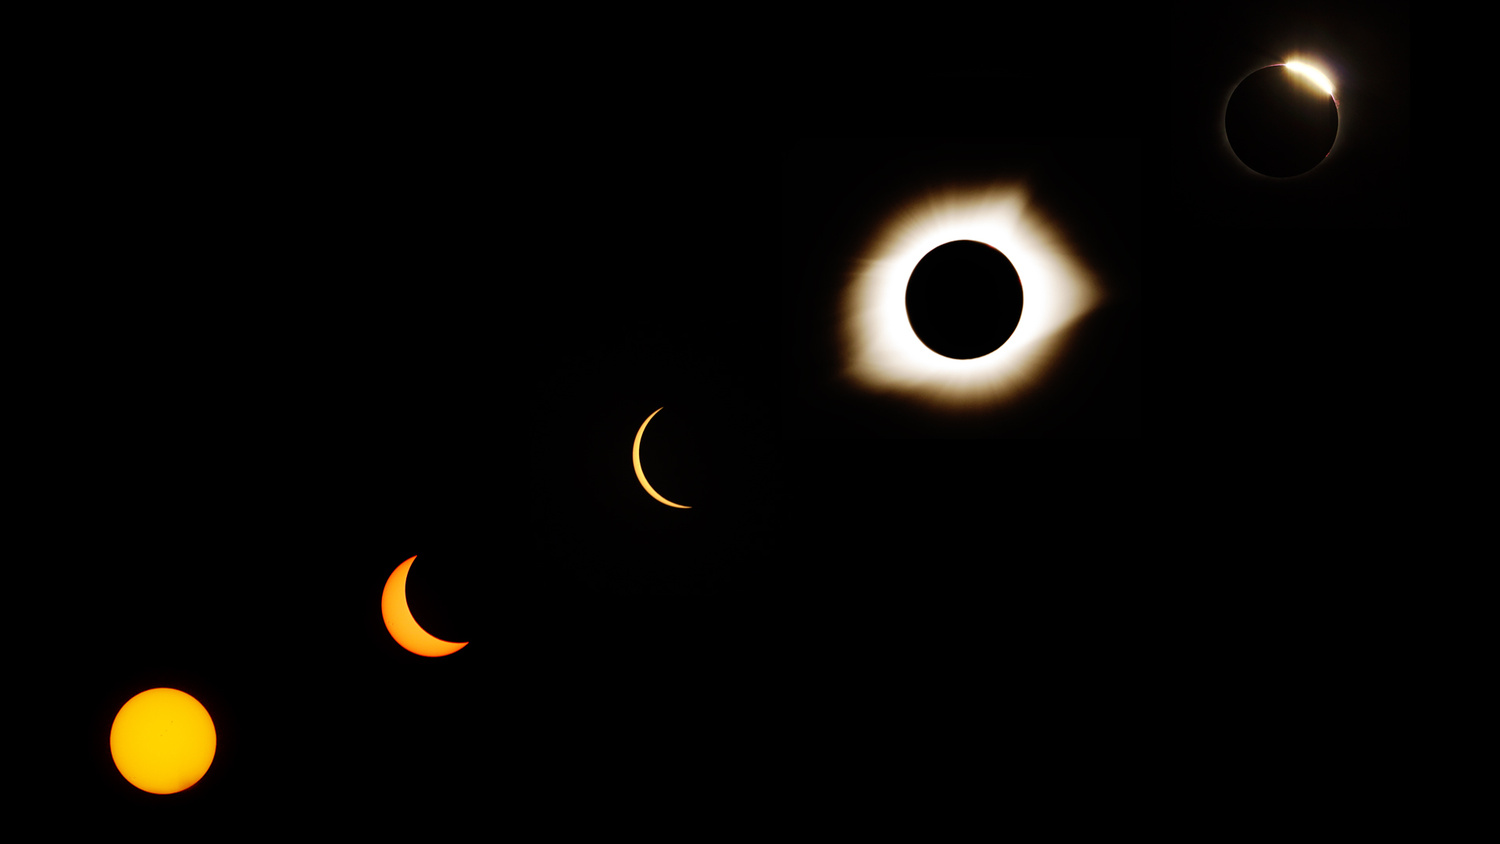 Total Eclipse Phases by Andrew Swanson